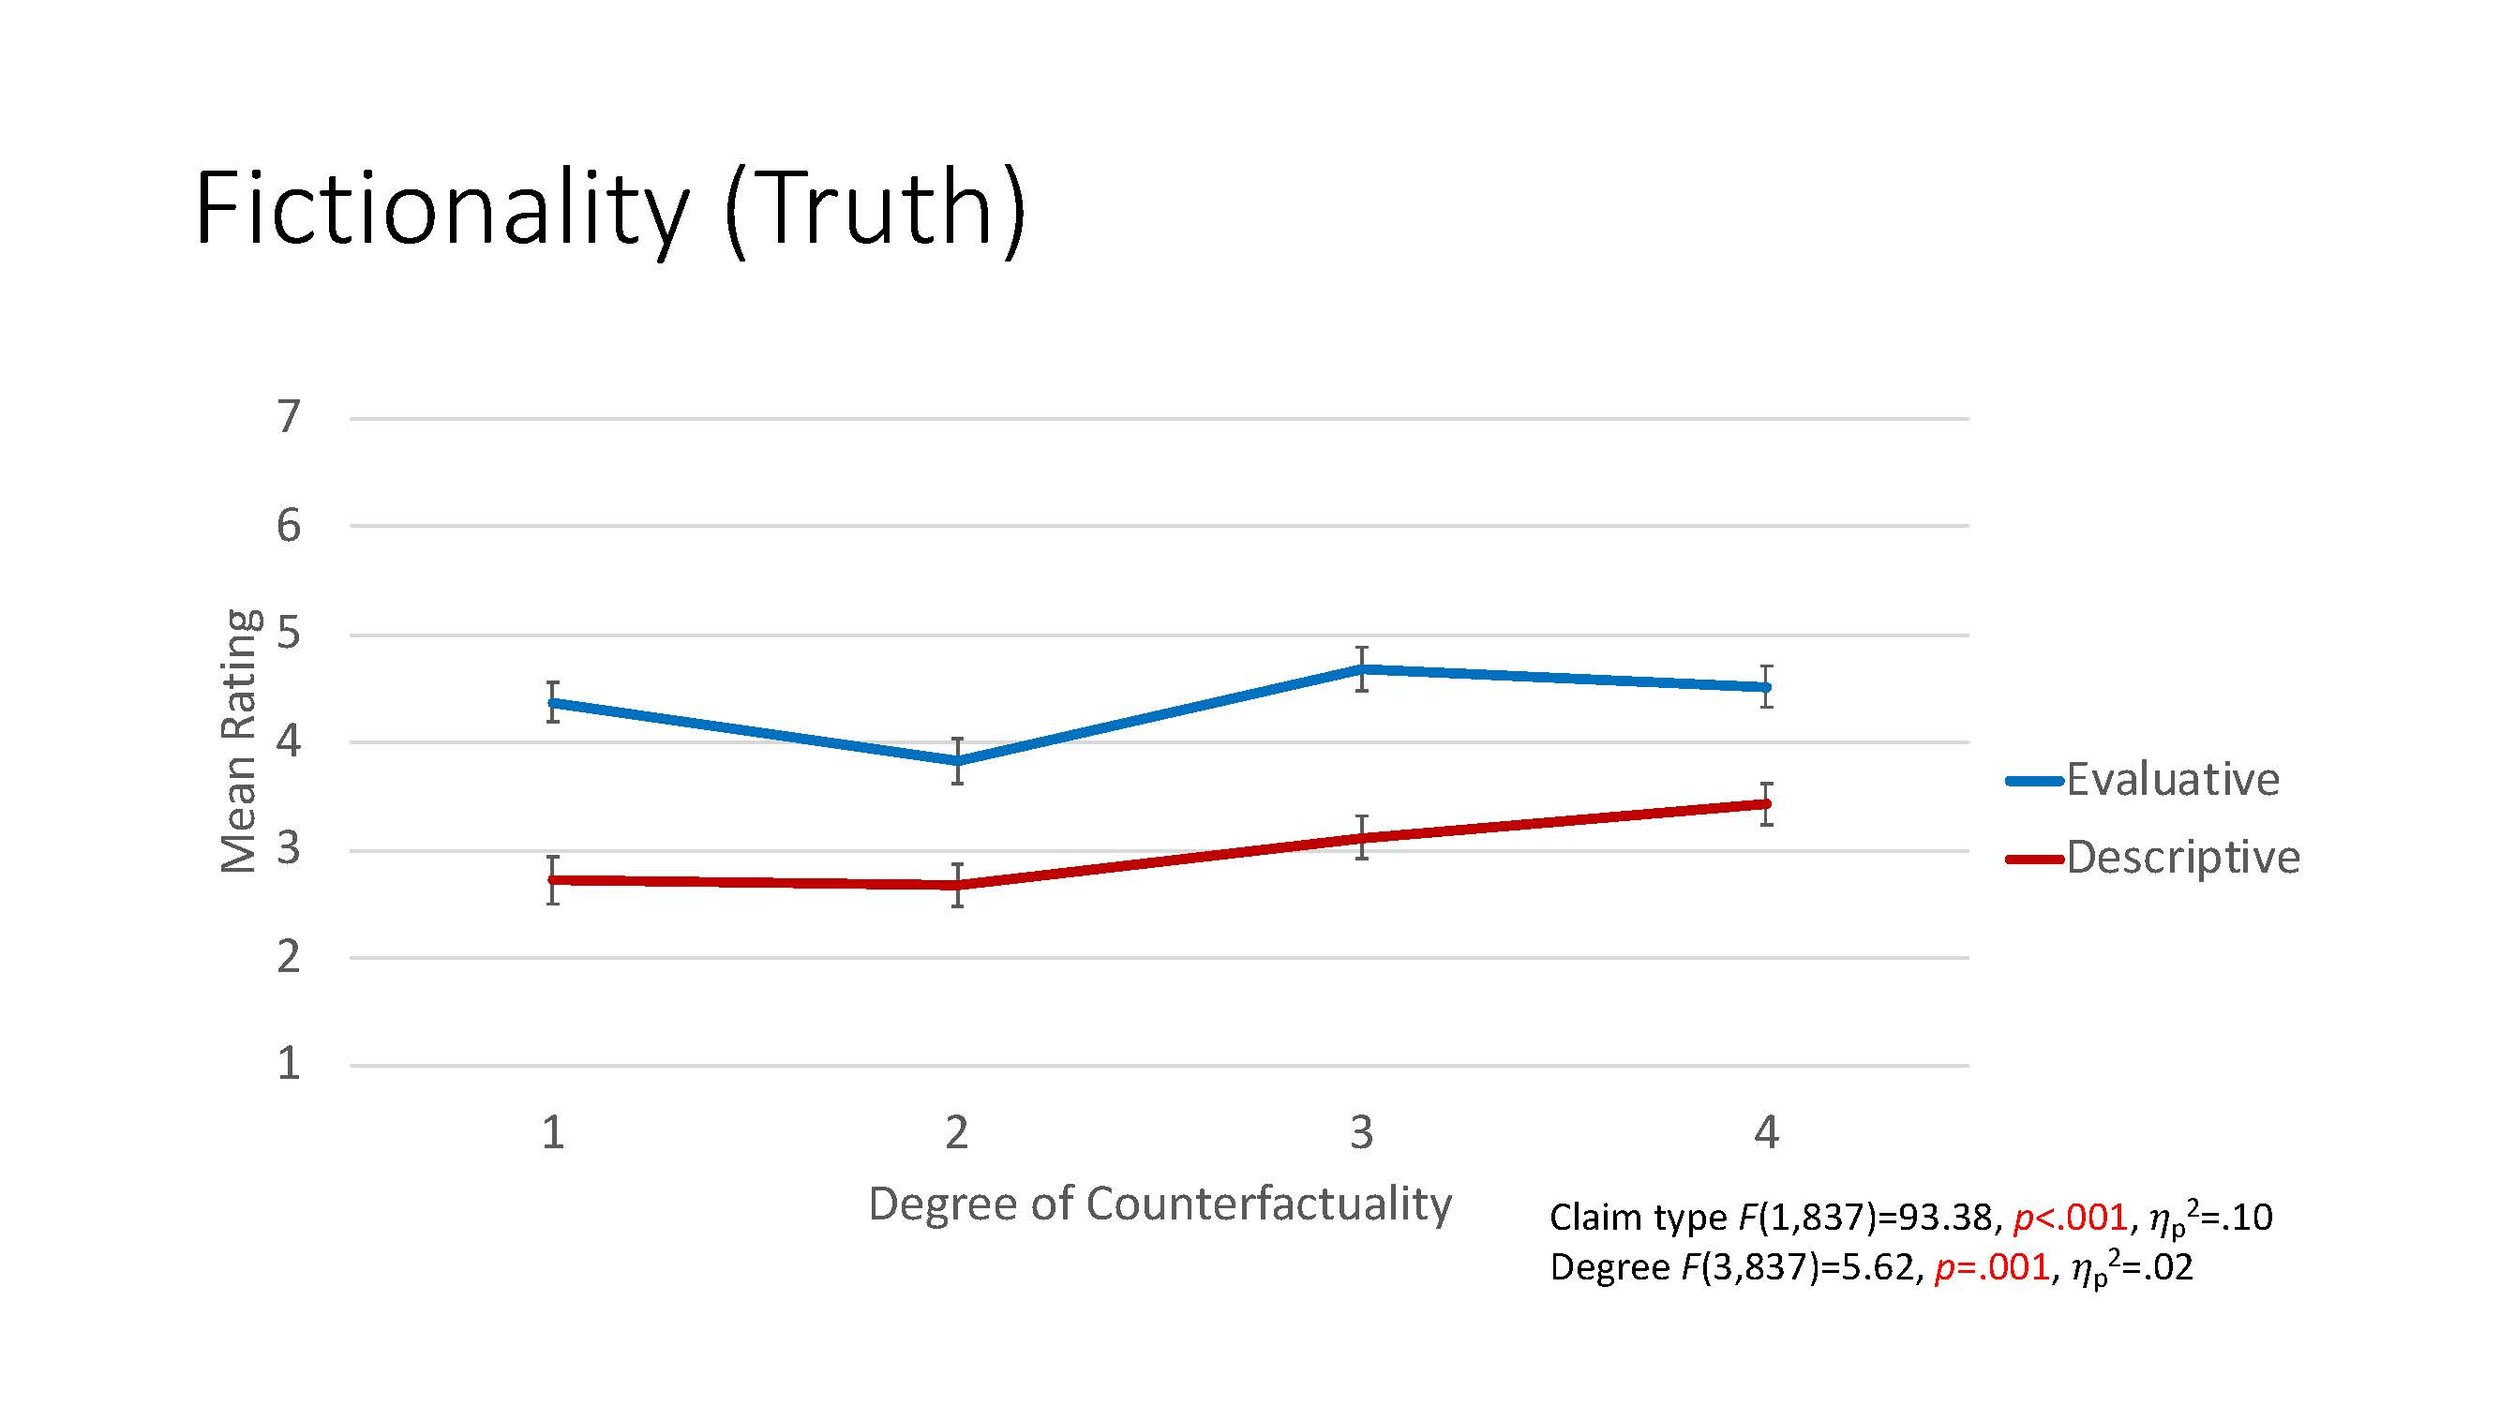 Figure 1 . Mean ratings of imaginative resistance in terms of truth judgments for evaluative and descriptive claims across degrees of counterfactuality.